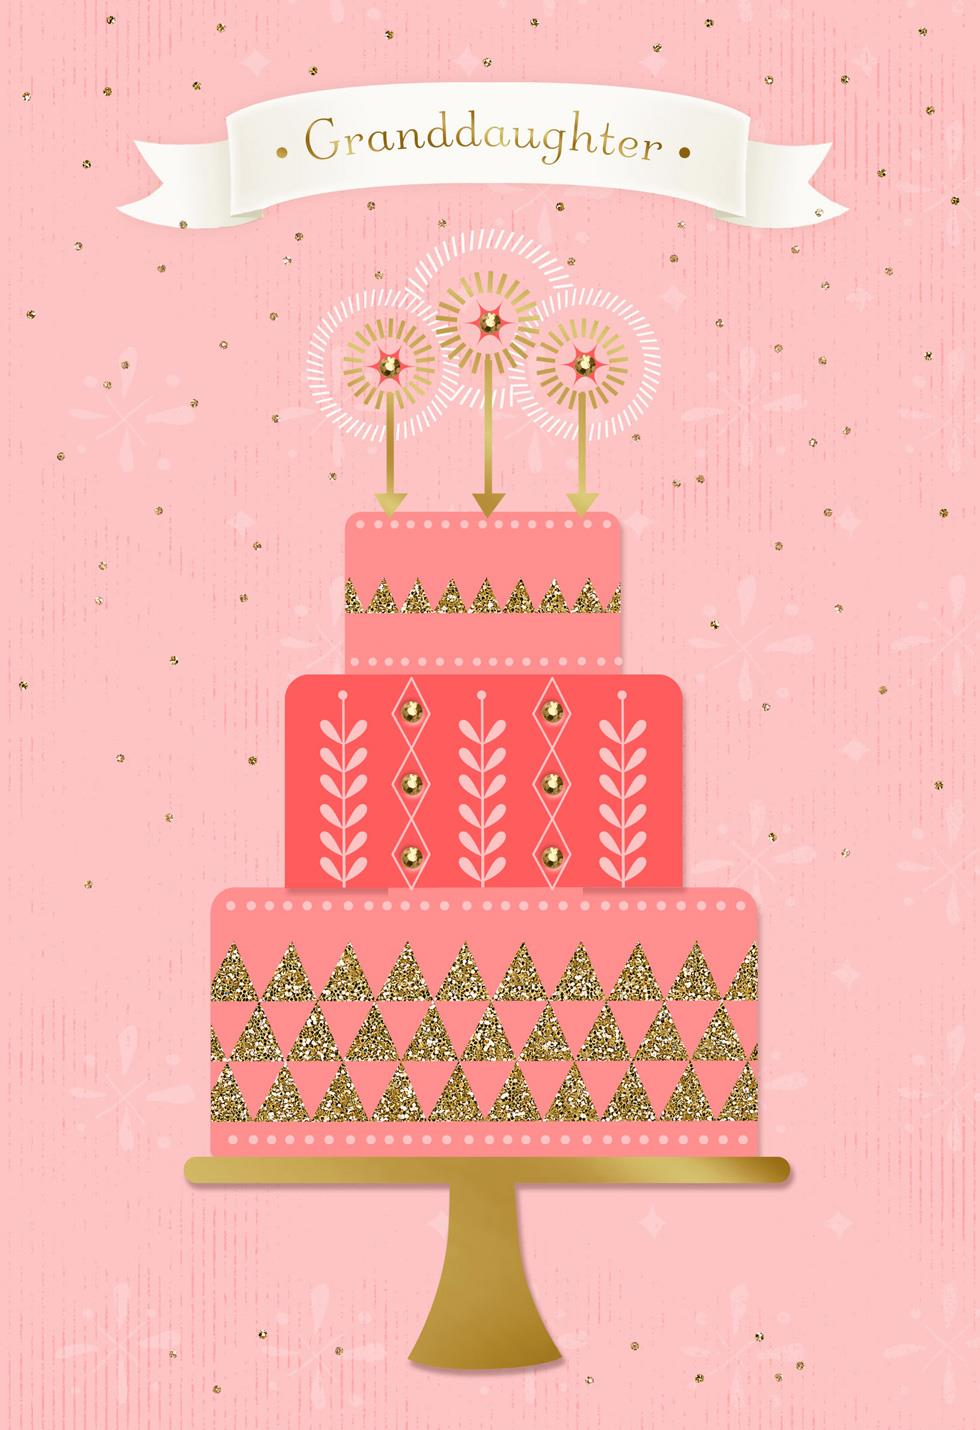 Pink Tiered Cake Birthday Card For Granddaughter